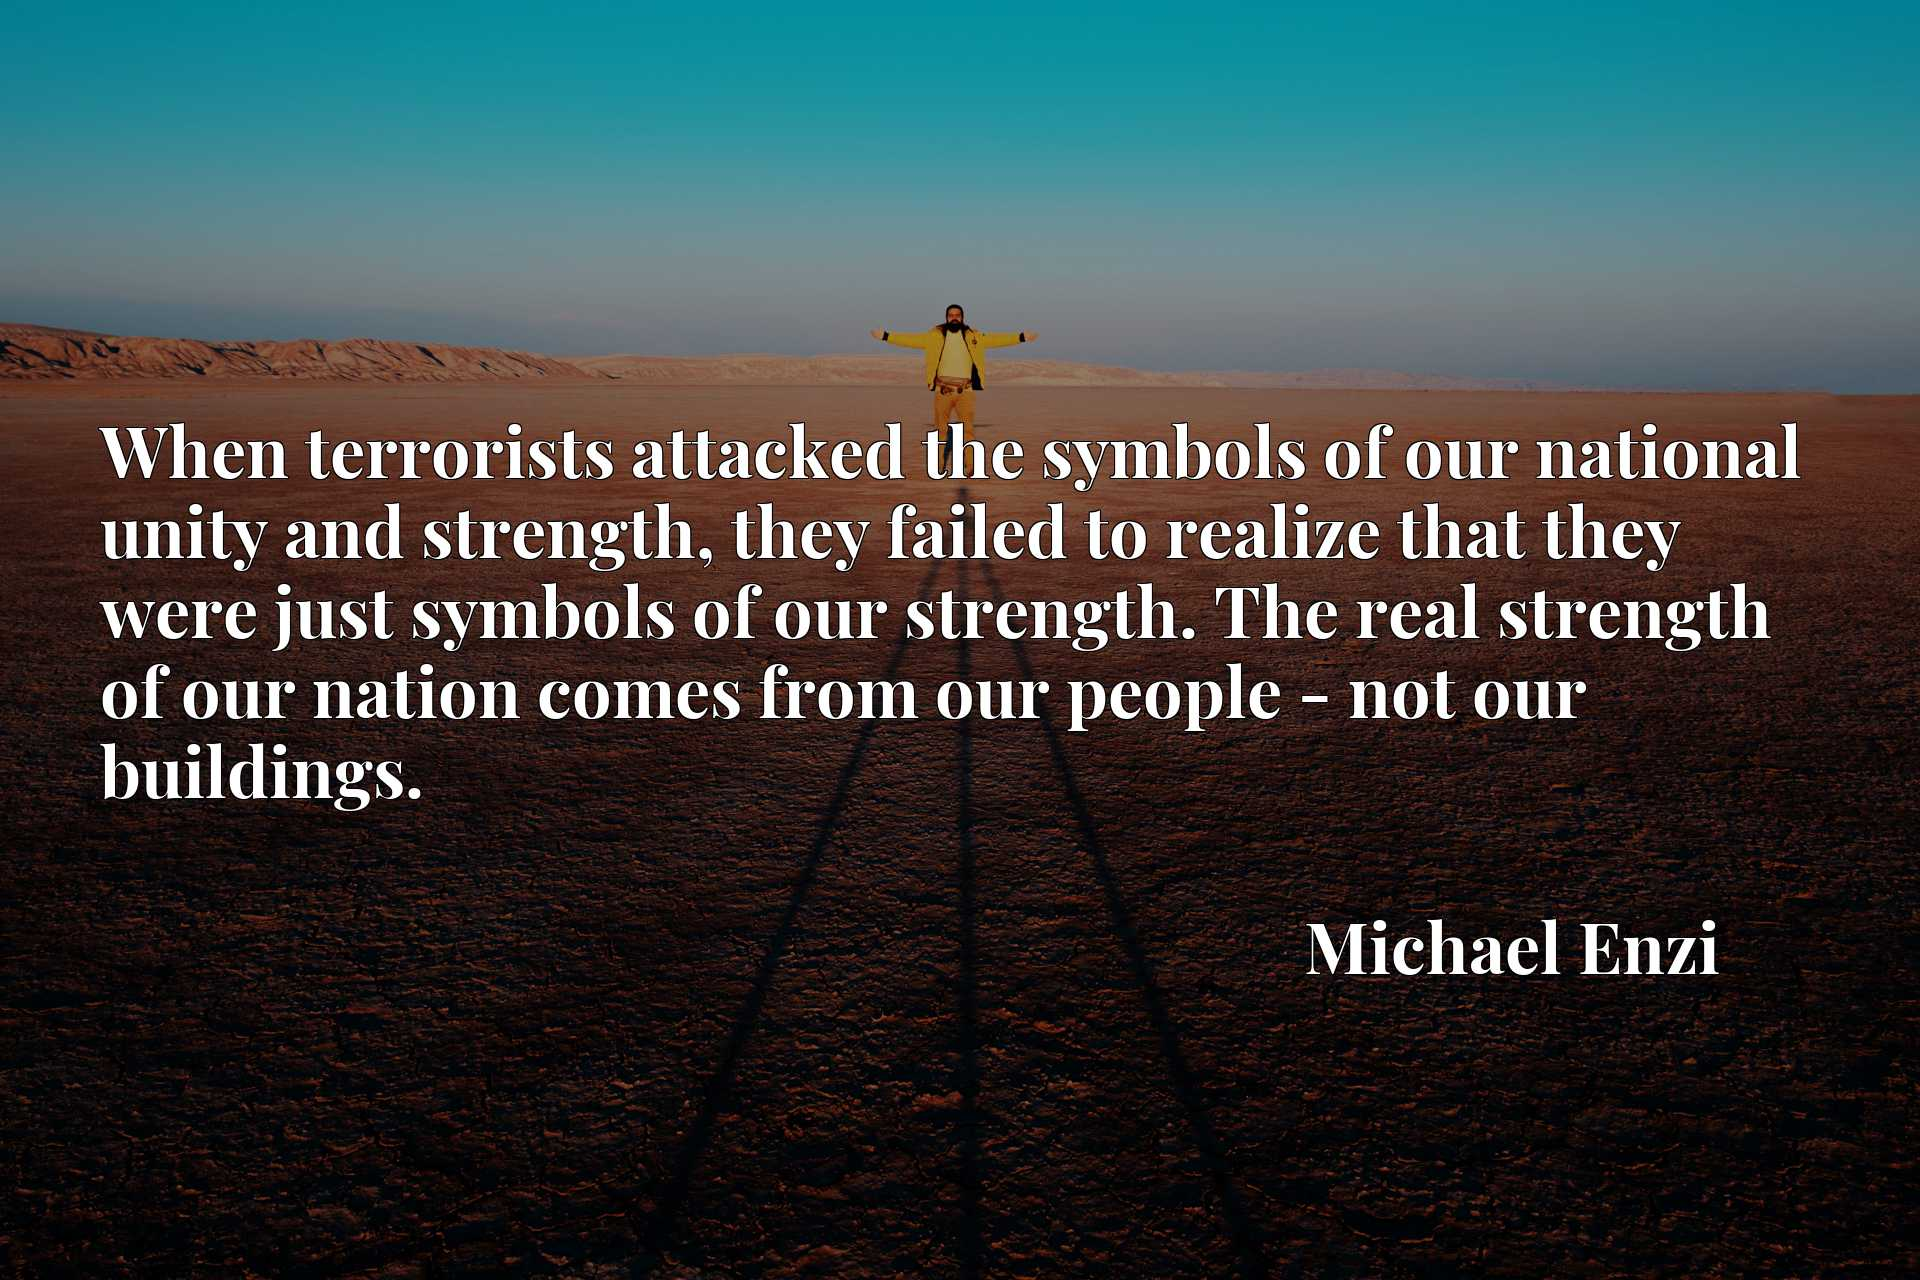 When terrorists attacked the symbols of our national unity and strength, they failed to realize that they were just symbols of our strength. The real strength of our nation comes from our people - not our buildings.